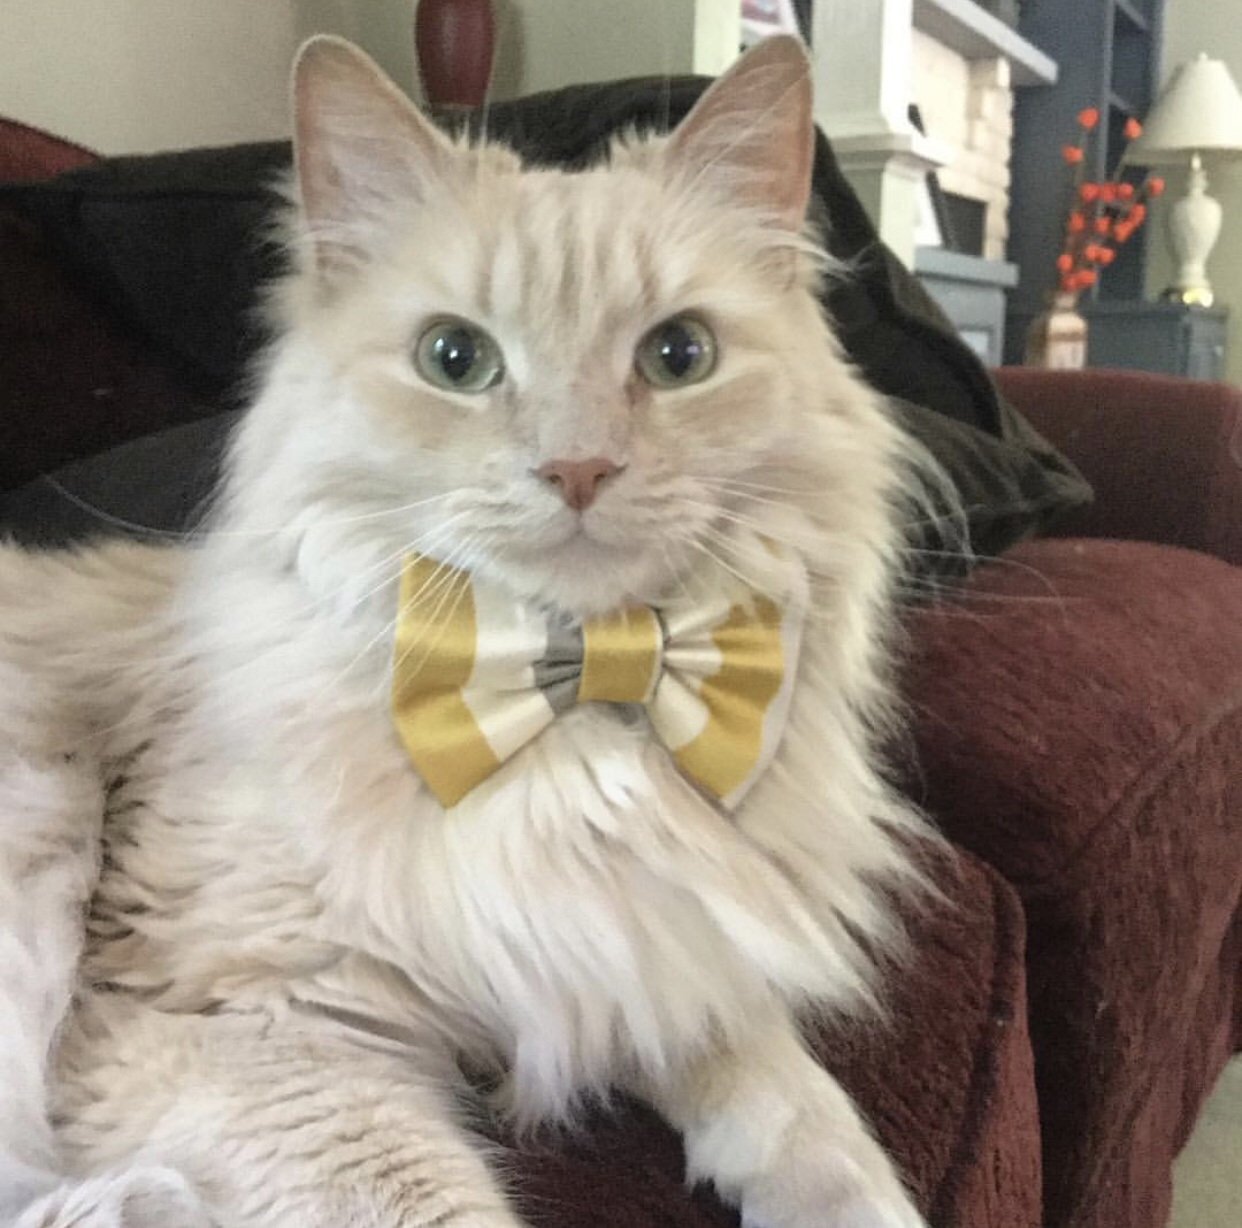 Orange tabby cat wearing a bow tie